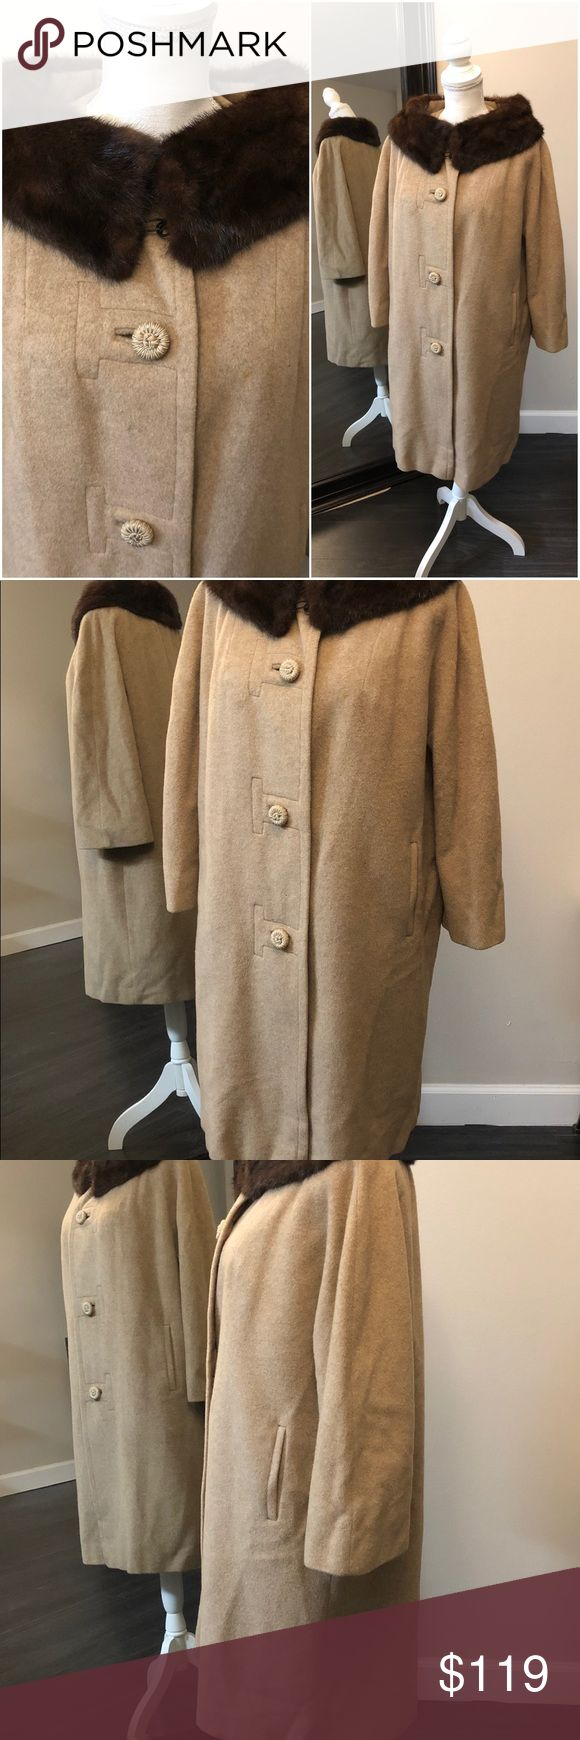 Mr. Jerome Original 100% cashmere and mink coat Vintage Mr. Jerome Original coat from the 1950s.  100% Mongolian cashmere, mink lined collar, fully lined in satin, and in near pristine condition. Mr. Jerome Original Jackets & Coats